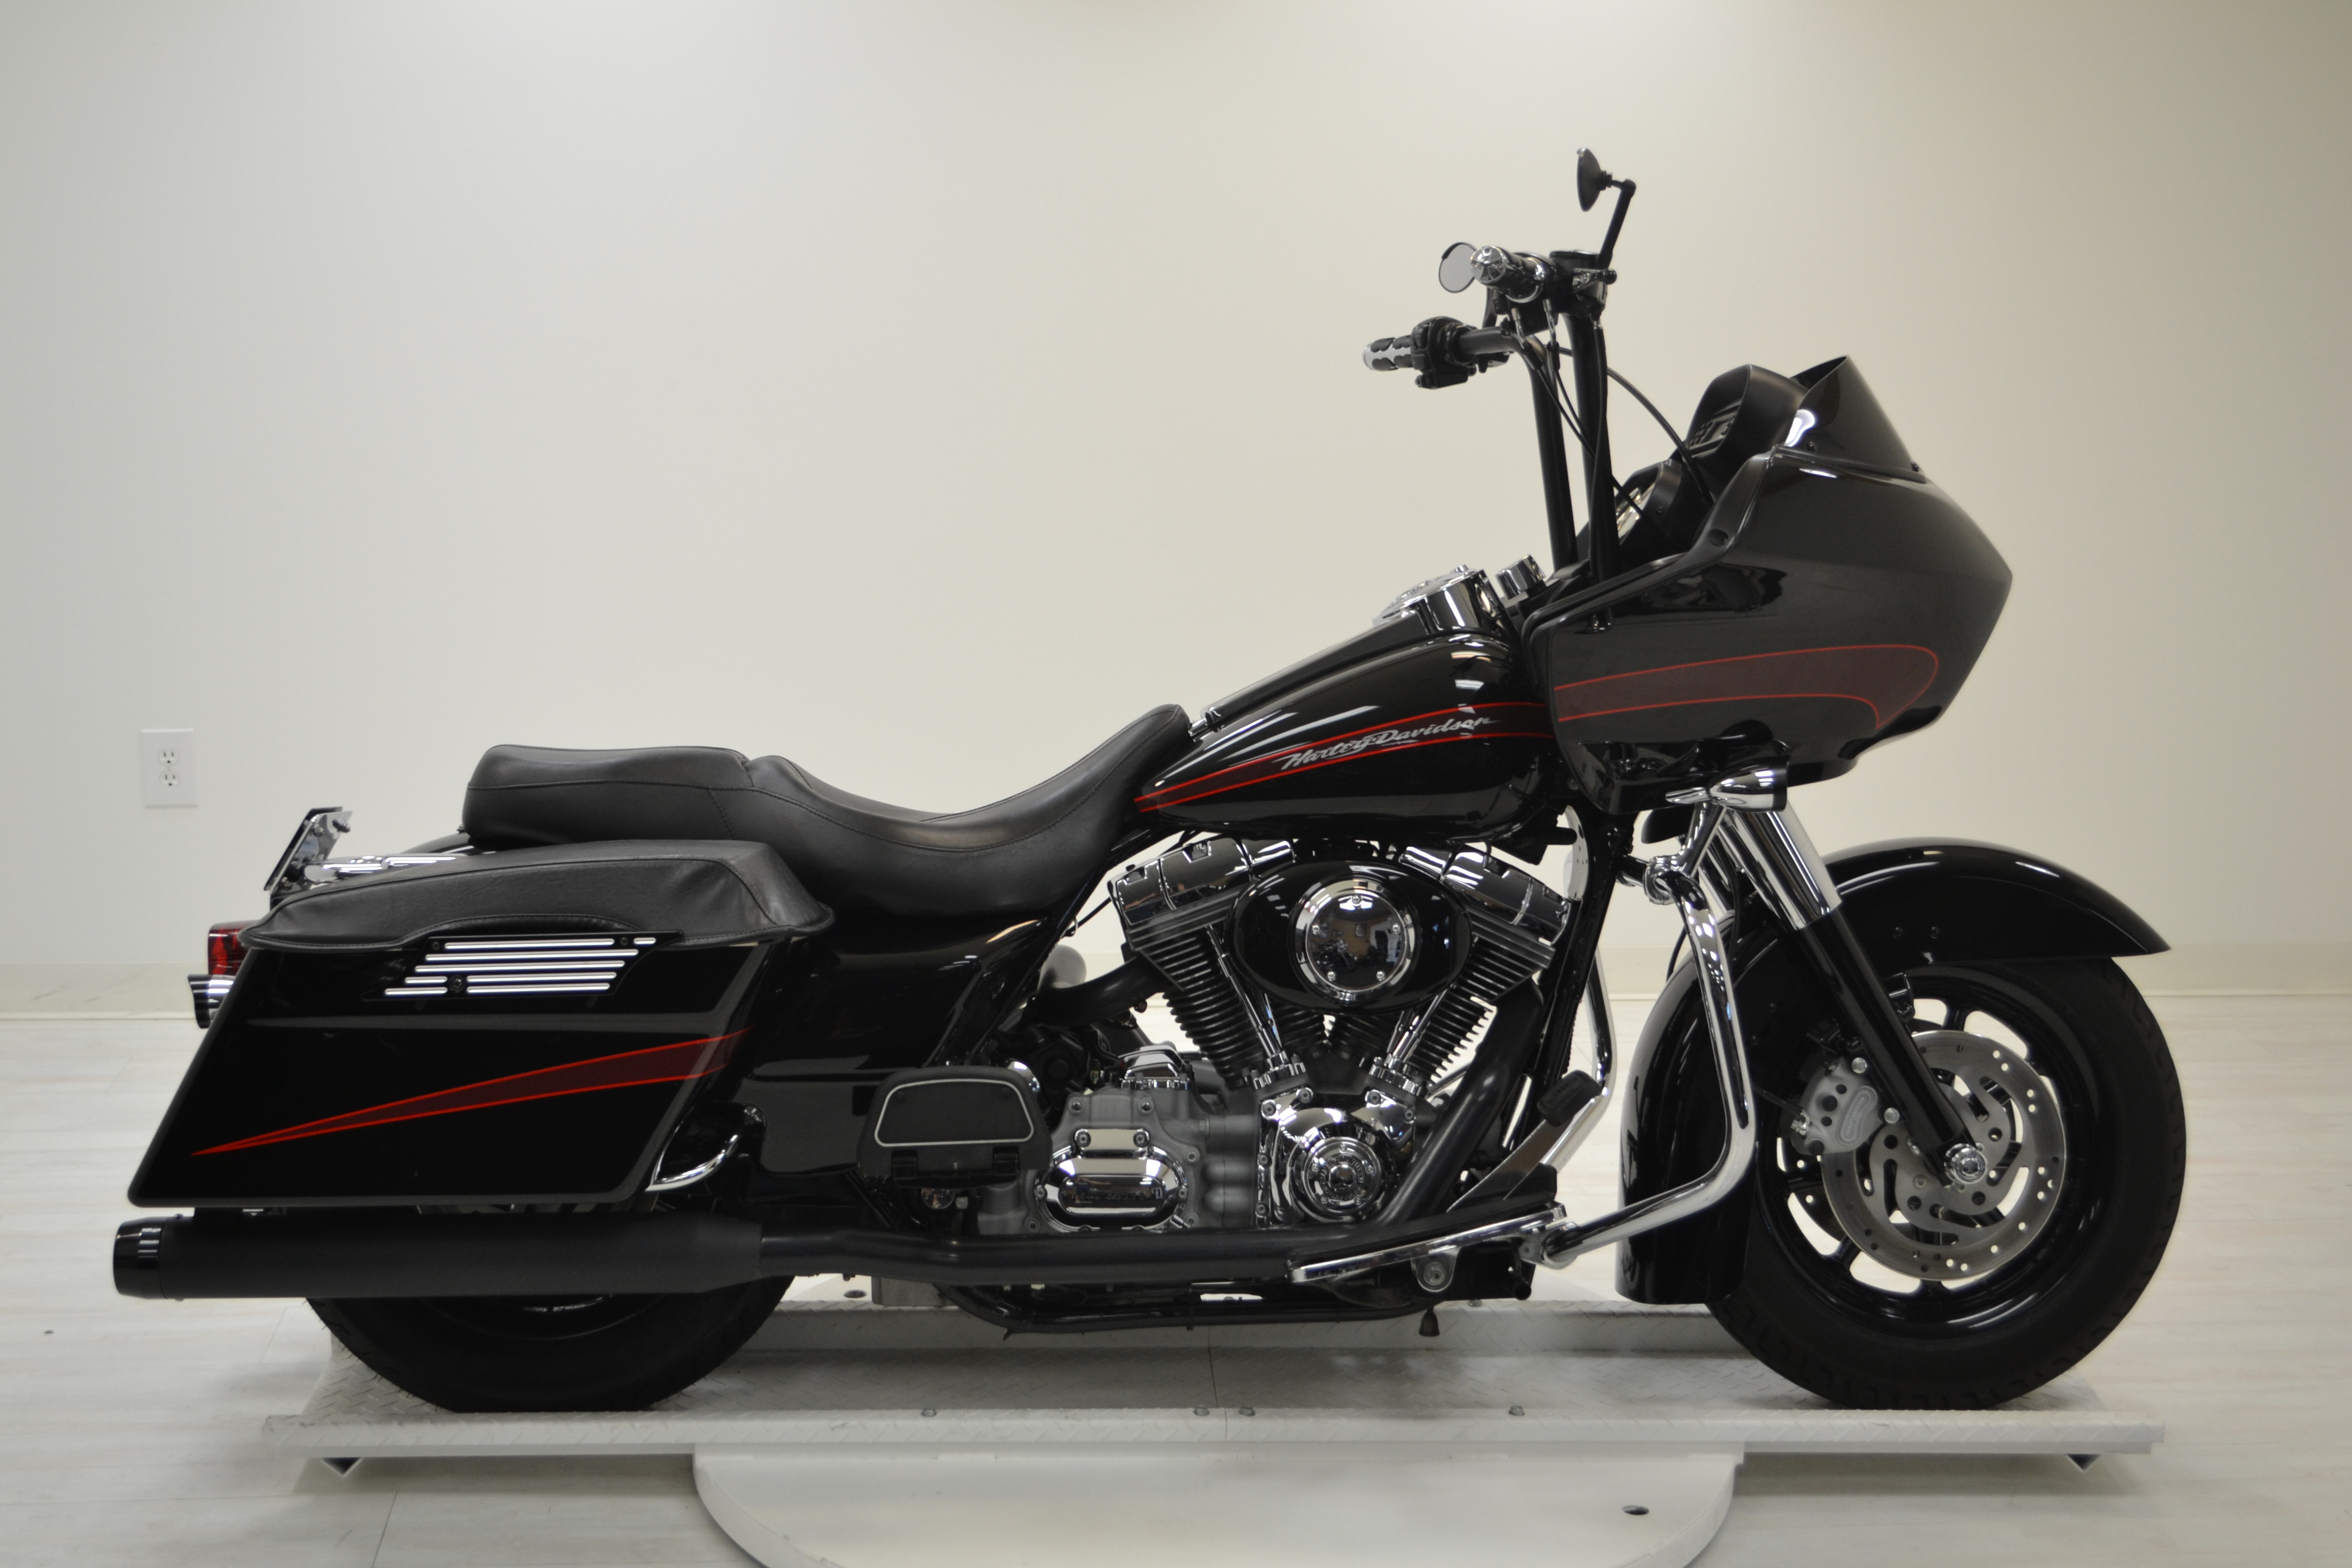 2007 Harley Davidson FLTR Road King